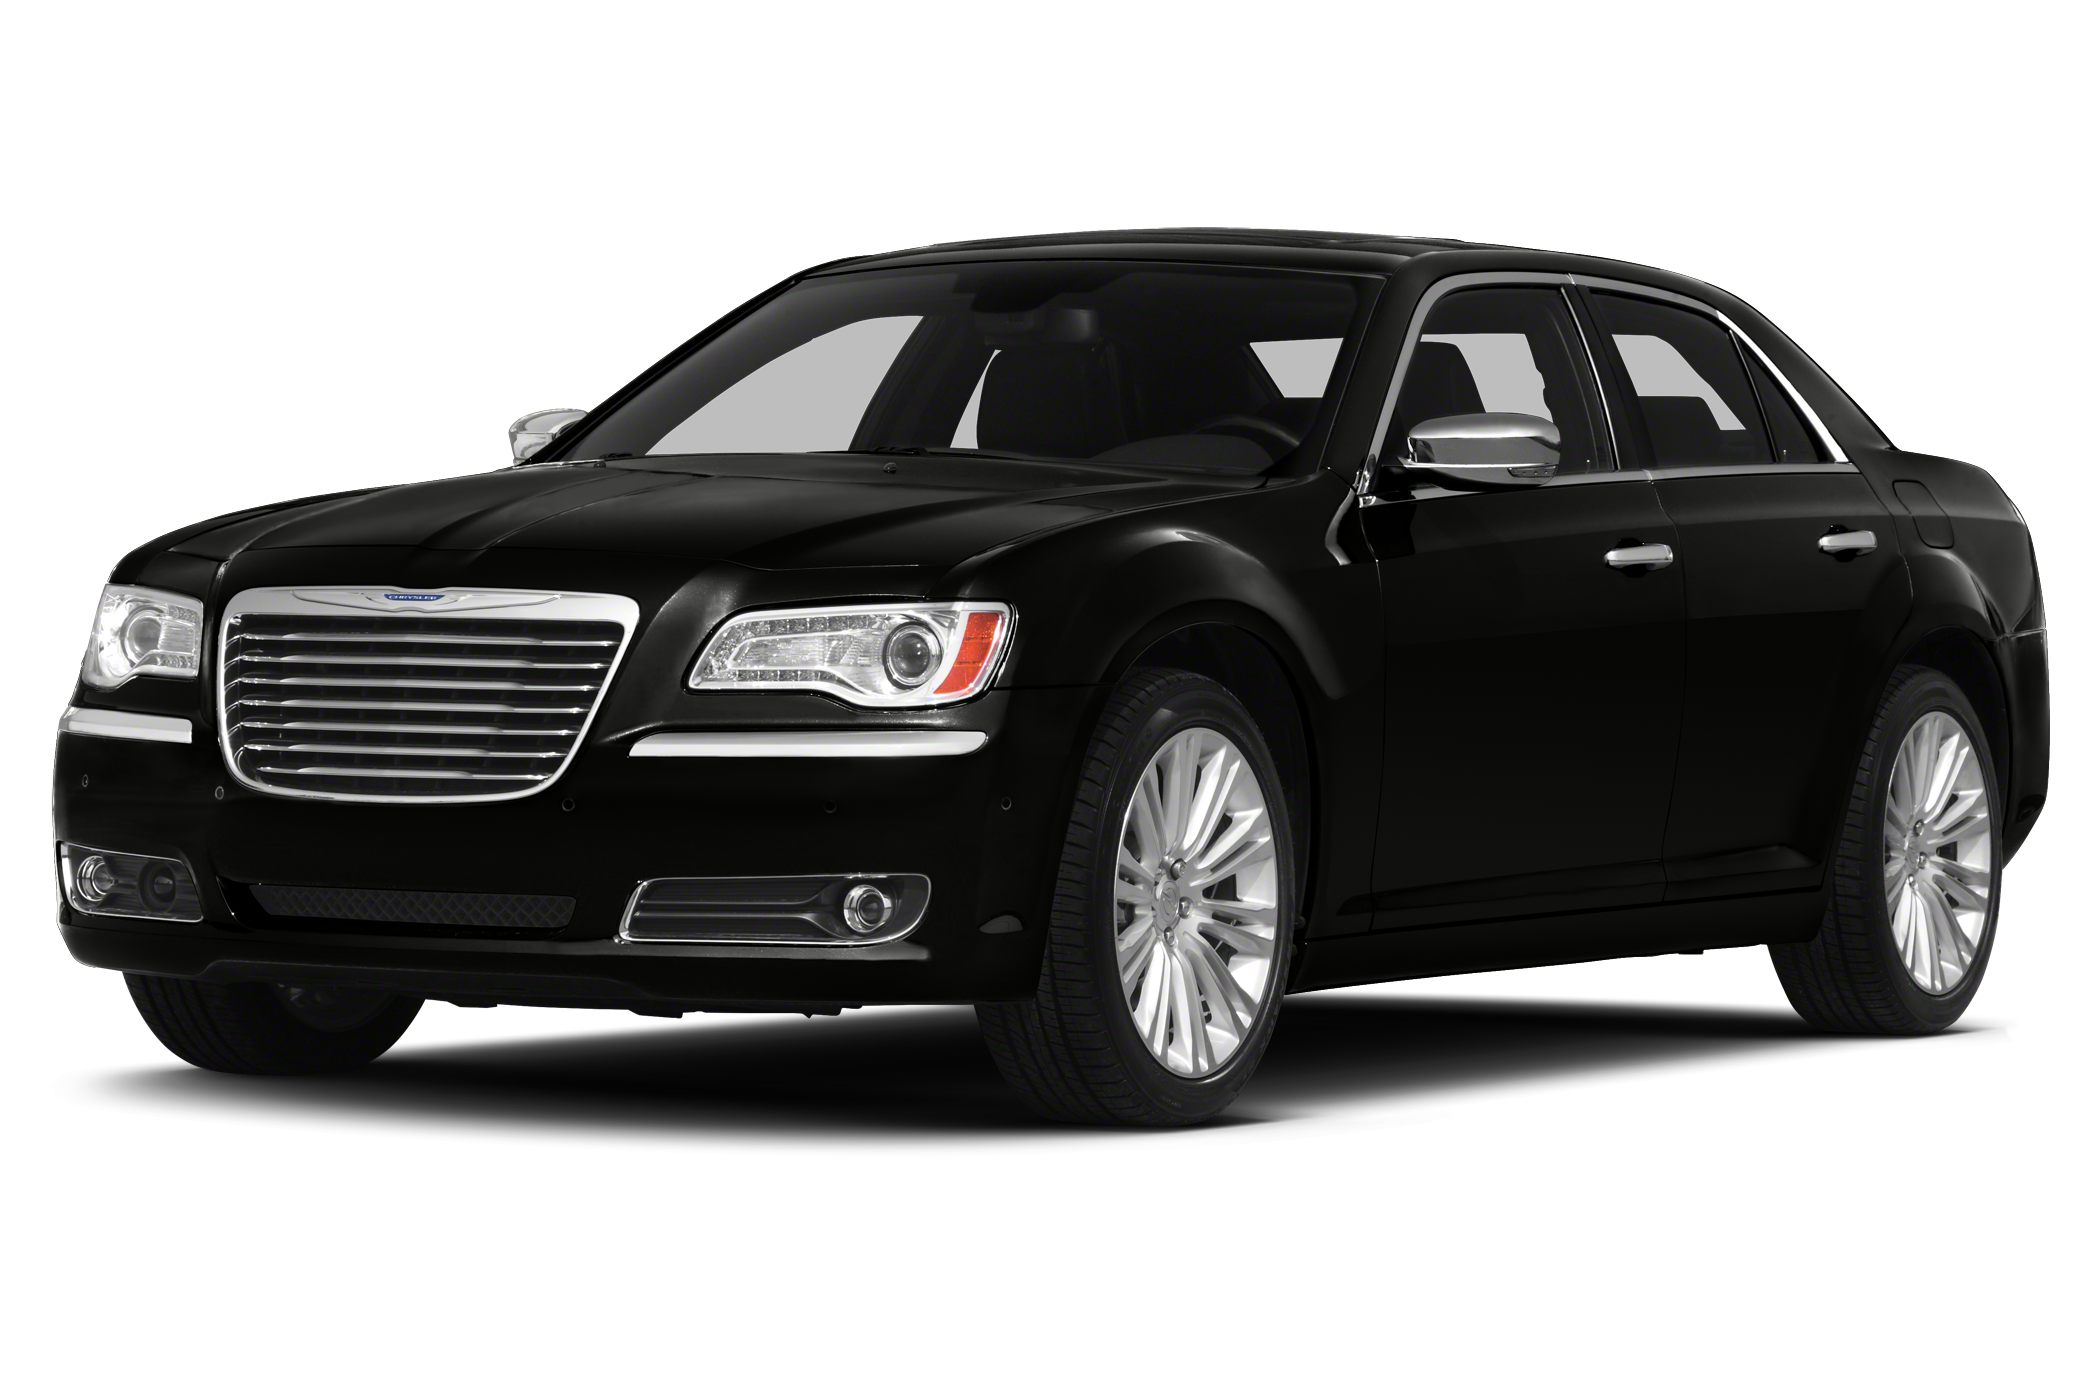 2014 Chrysler 300 Base Sedan for sale in Raleigh for $21,998 with 37,975 miles